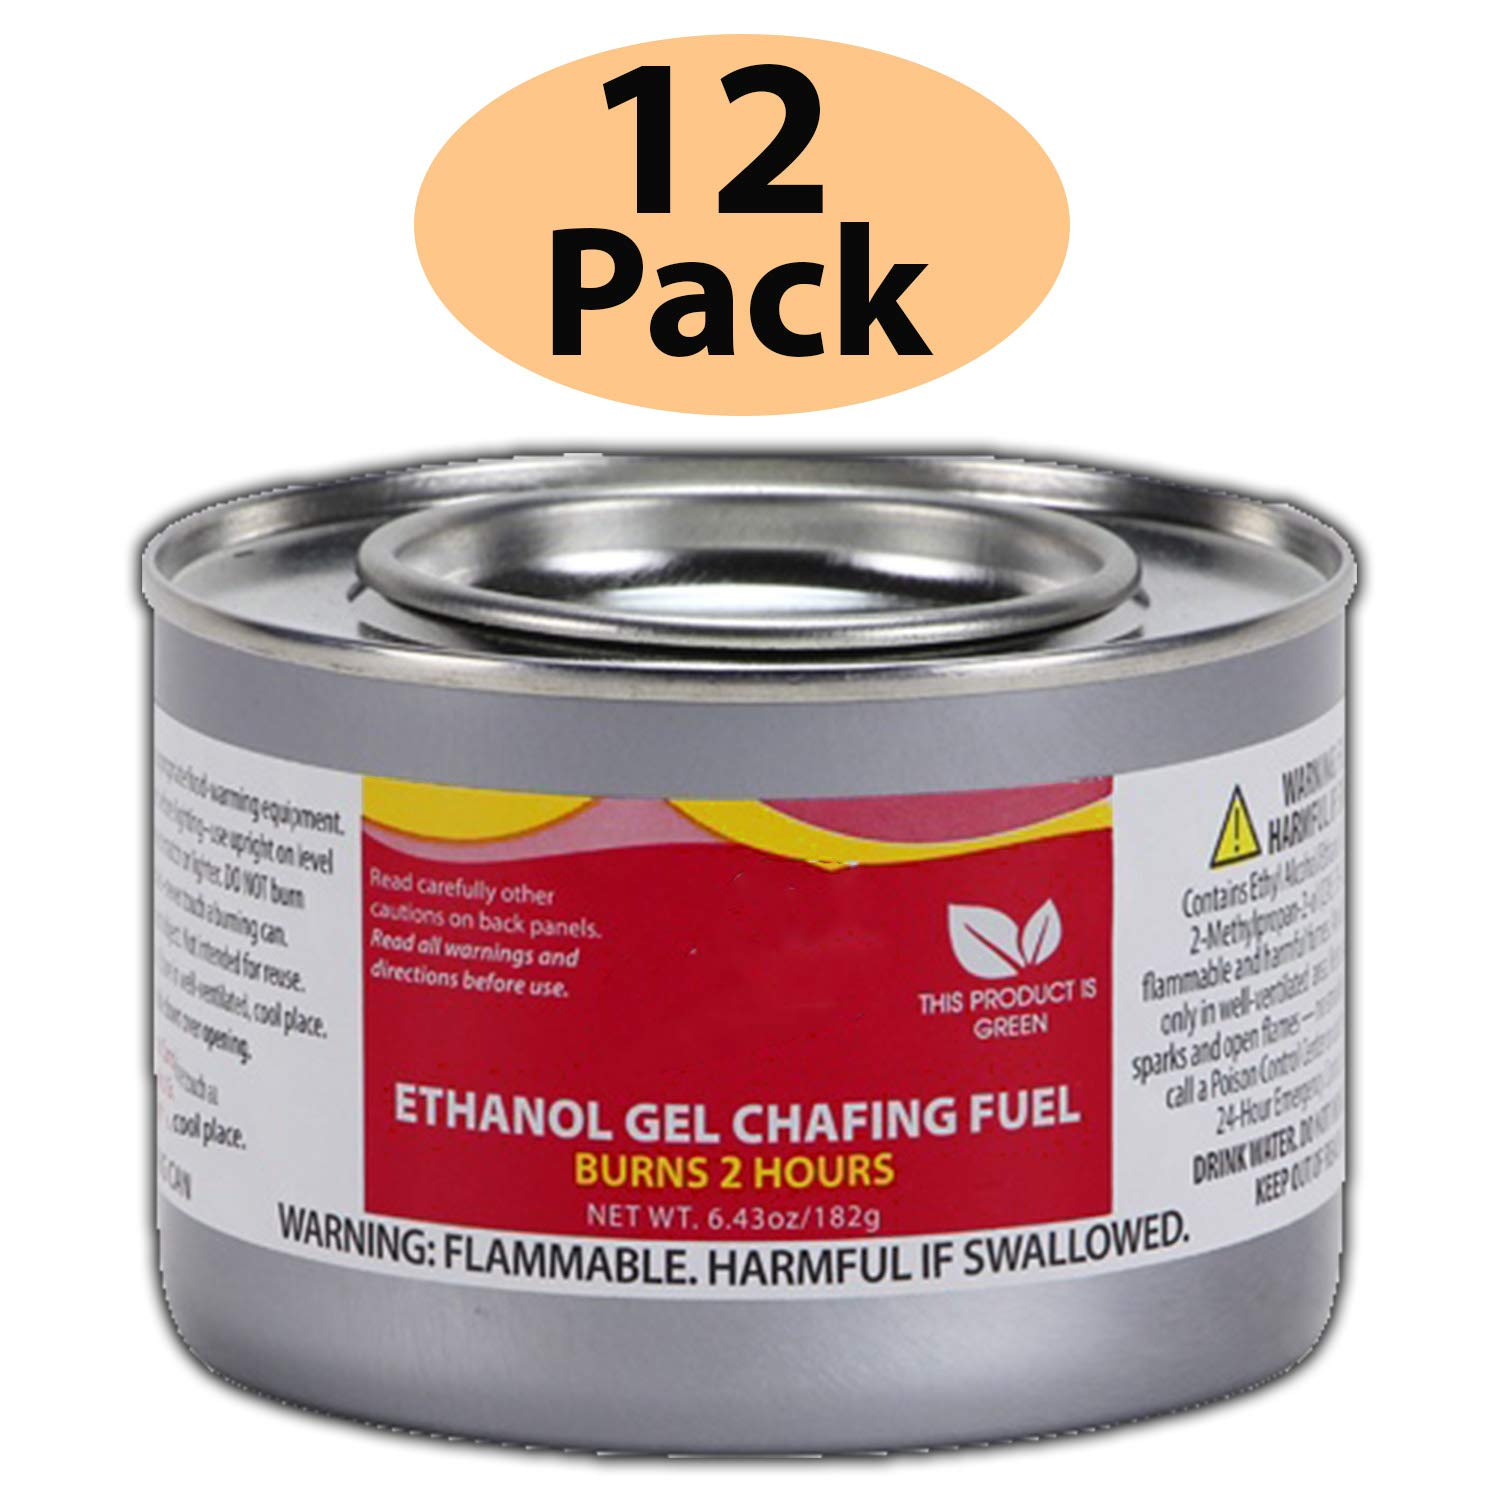 Chafing Dish Fuel Cans - Includes 12 Ethanol Gel Chafing Fuels, Burns for 2 Hours (6.43 OZ) for your Cooking, Food Warming, Buffet and Parties. by HeroFiber (Image #2)